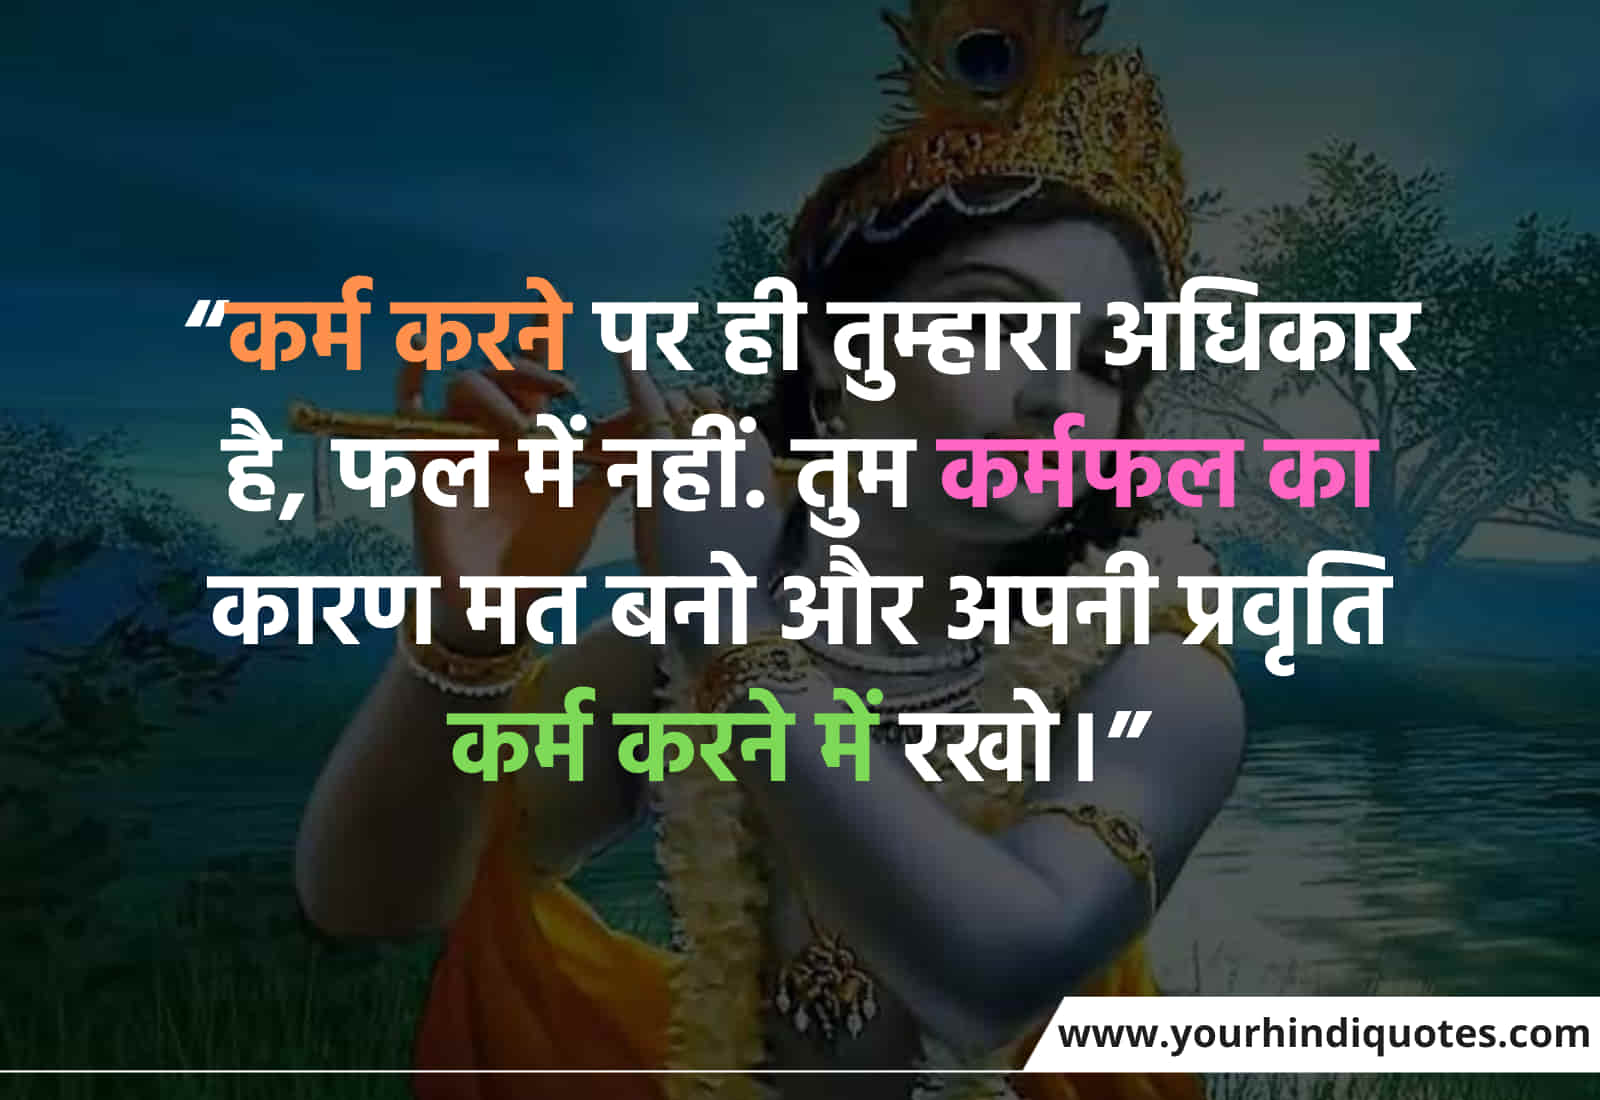 Best Hindi Quotes For Karma